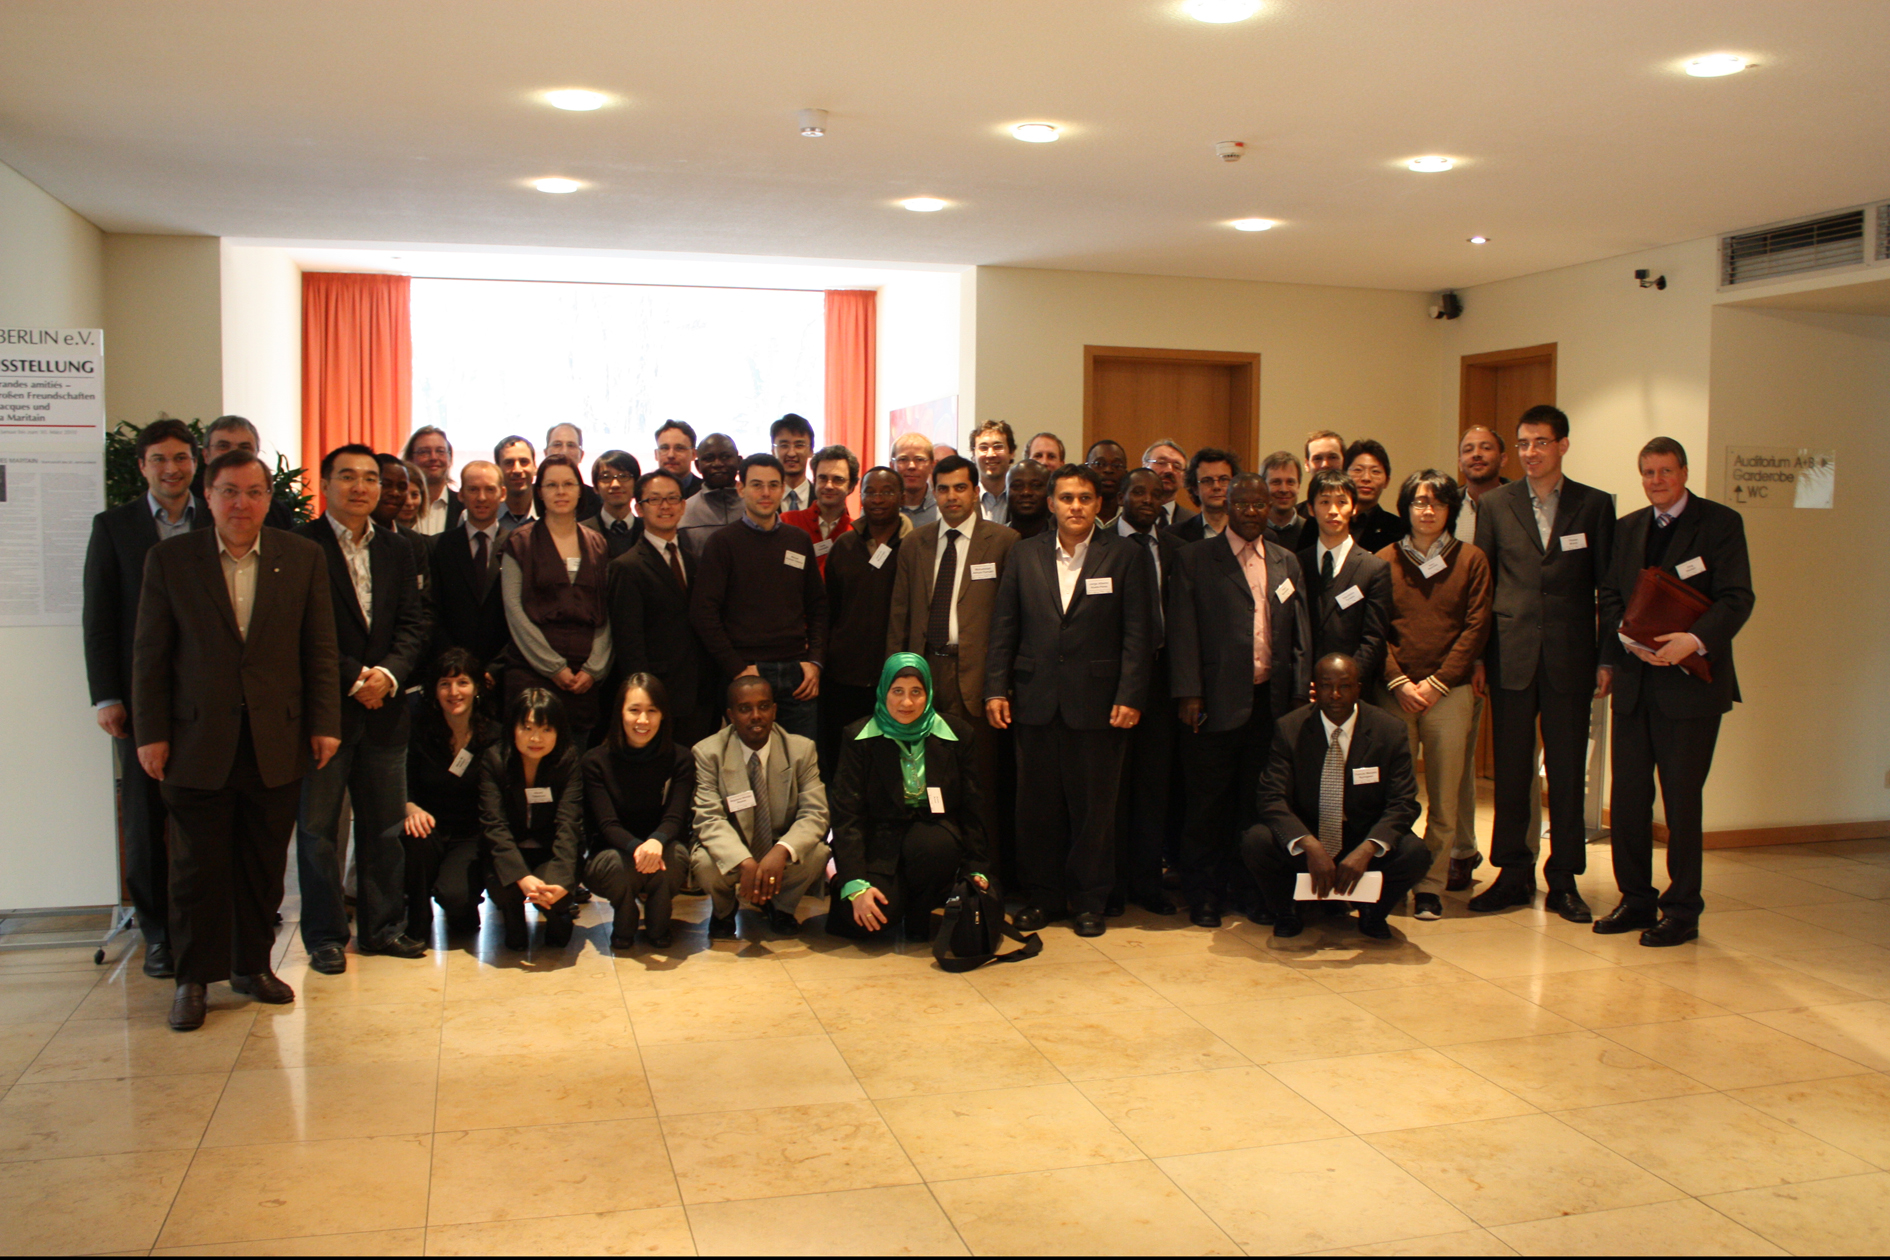 Founding Meeting of the GYA in 2010